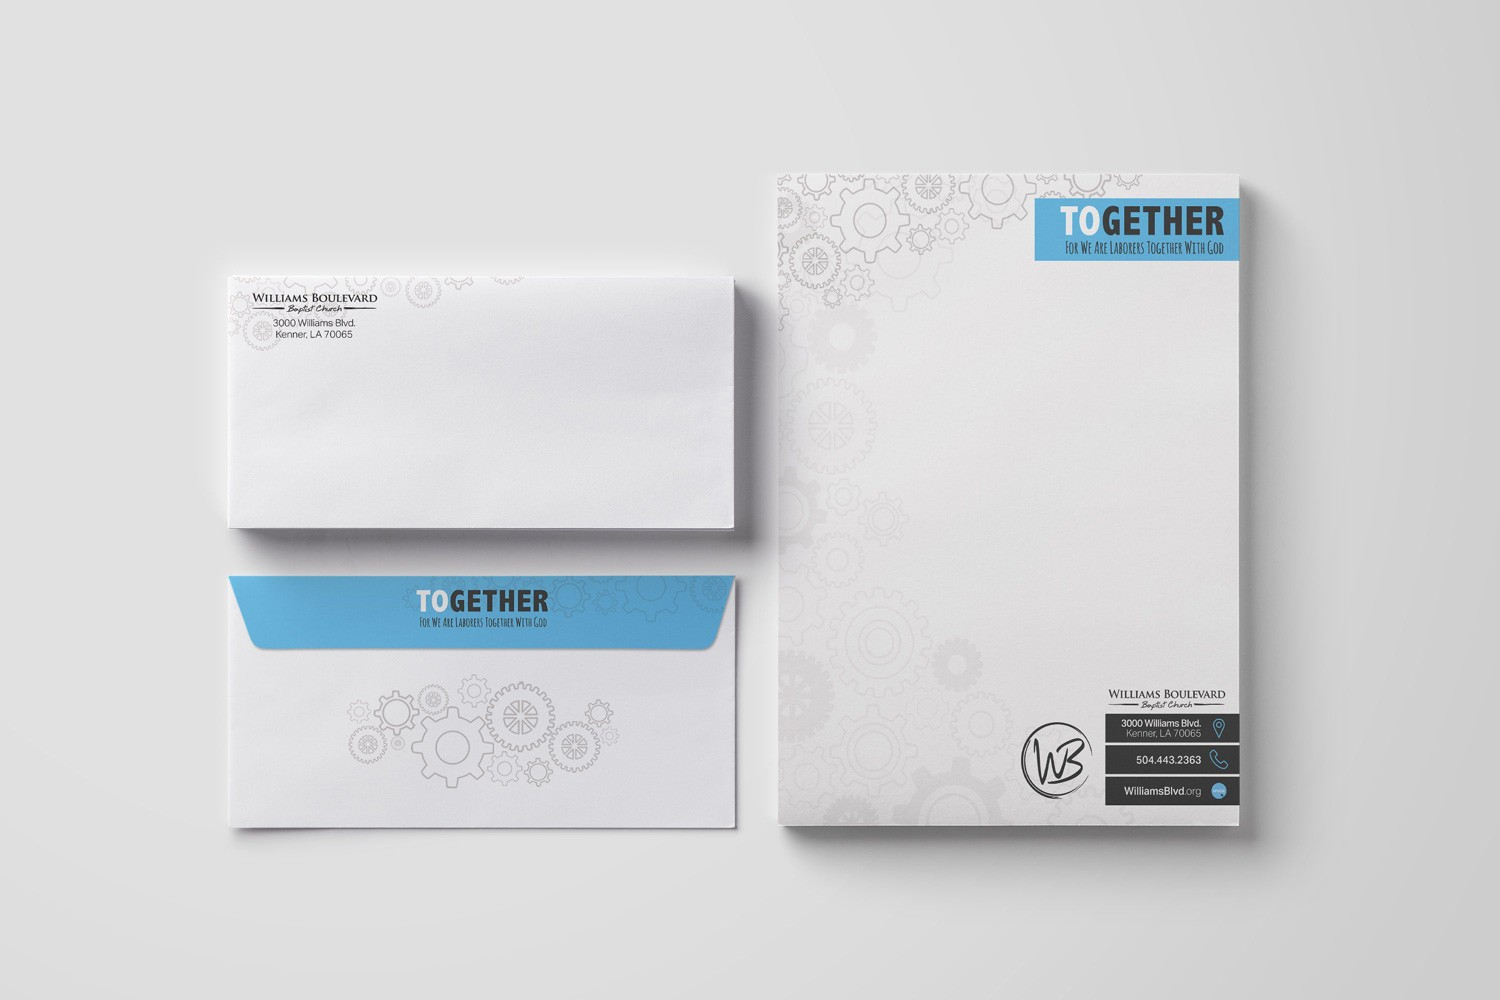 Letterhead & Envelopes for church capital campaign stewardship design and printing services examples, ideas case statment